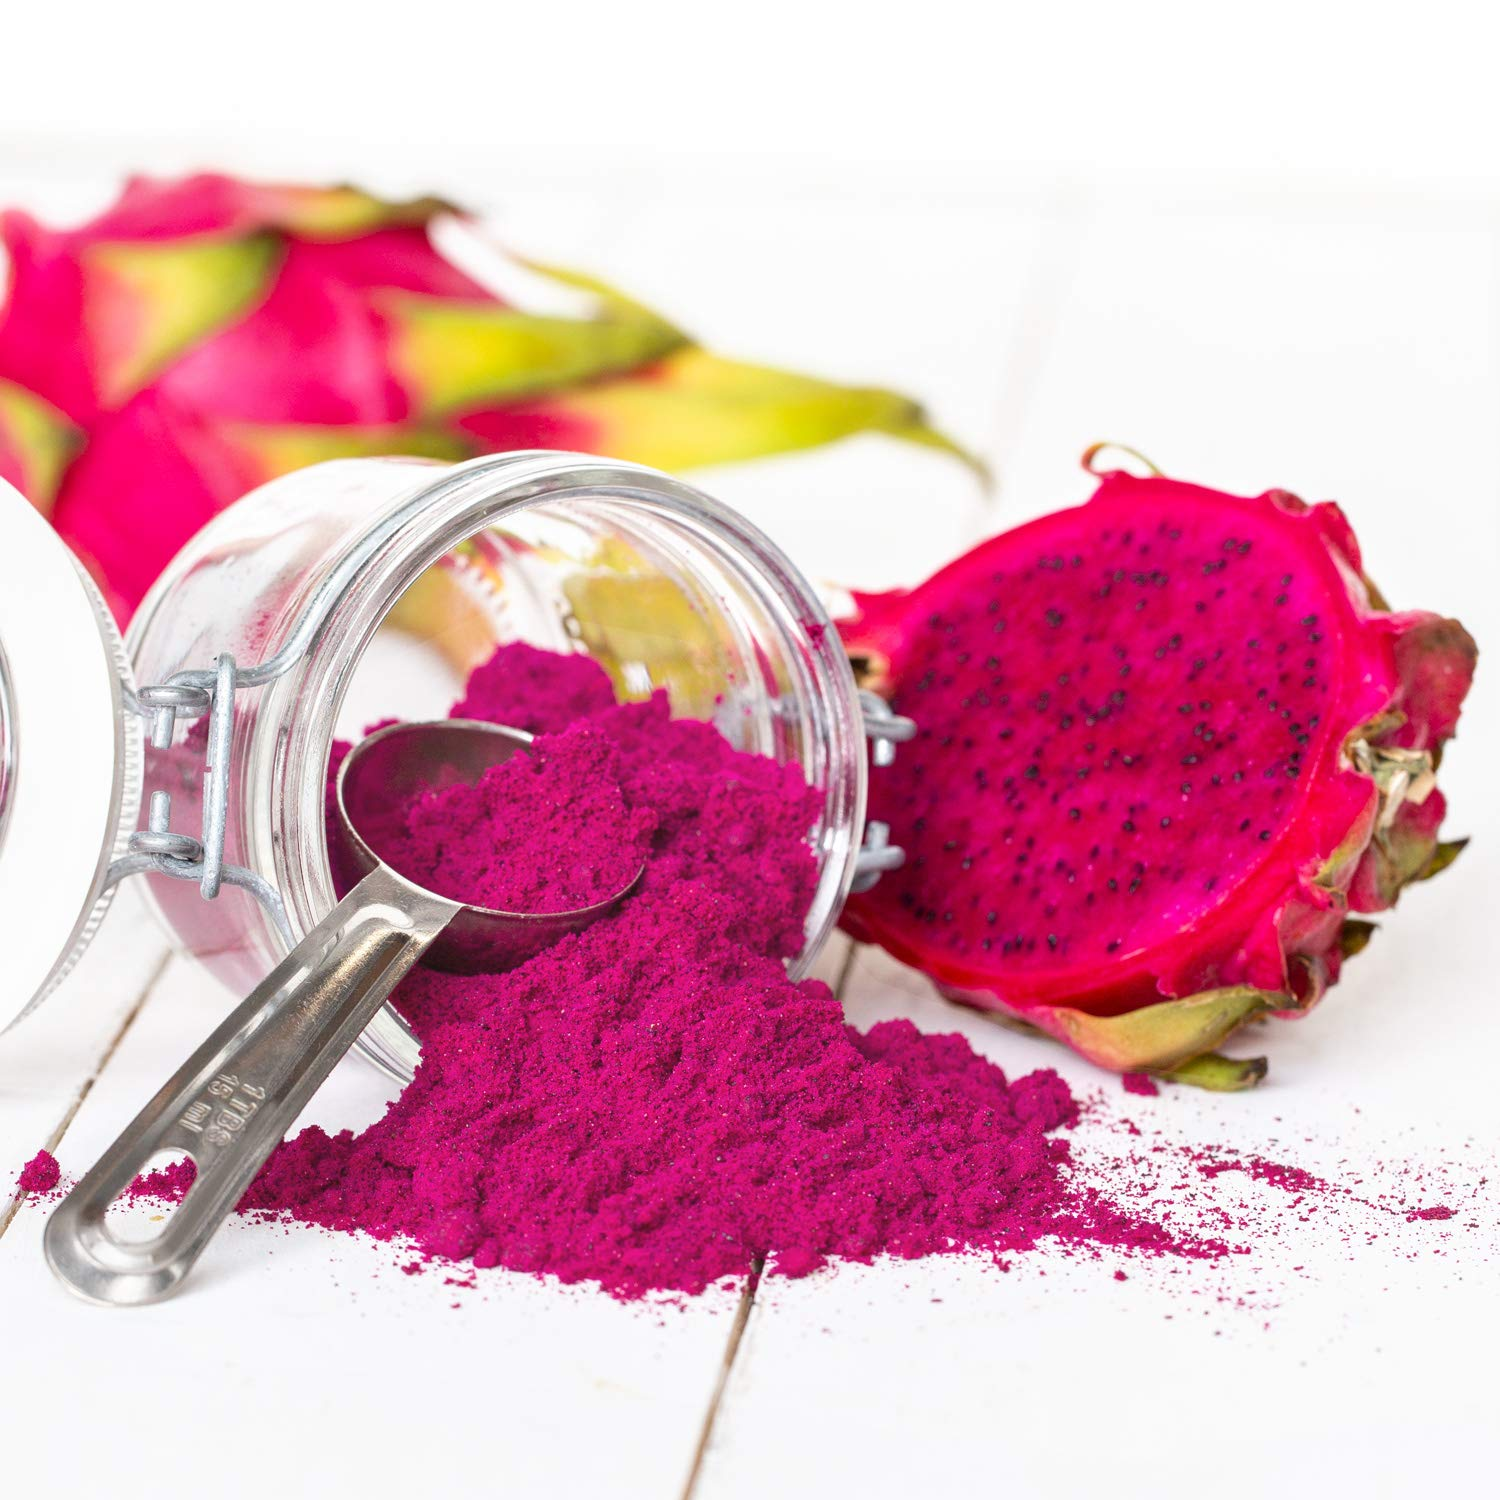 Pitaya Plus Freeze Dried Red Dragon Fruit Powder Organic. 4 Ounces of 100% Dragon Fruit for the Brightest Pink Rceipes. USDA and Oregon Tilth Organic, Non-GMO, Earth Kosher, Vegan Verified, B-Corp. by Pitaya Plus (Image #6)